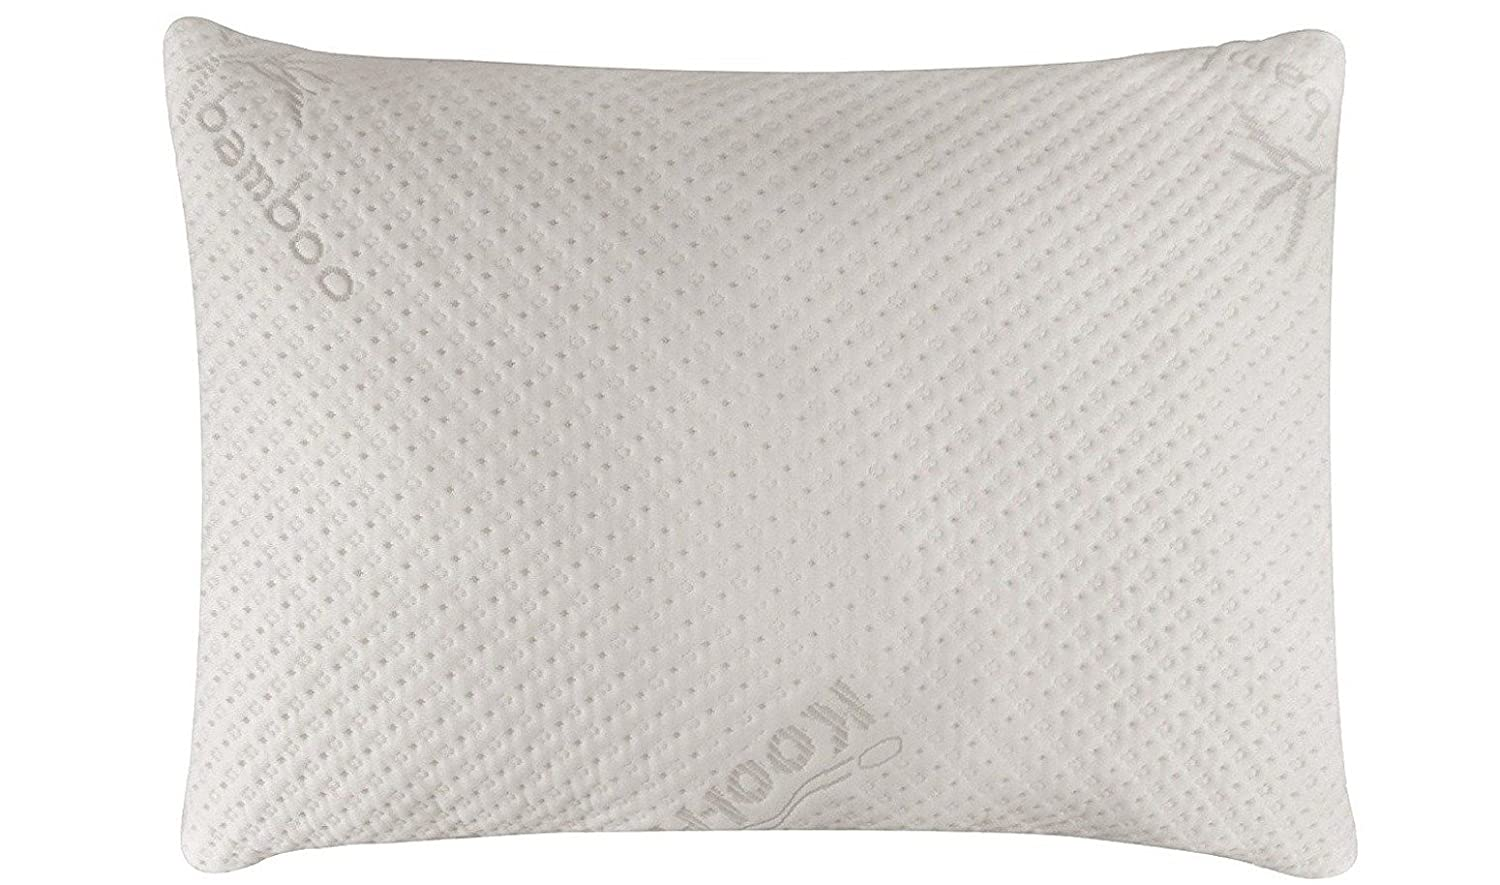 ventilated rayon from bamboo charcoal memory foam pillow siz